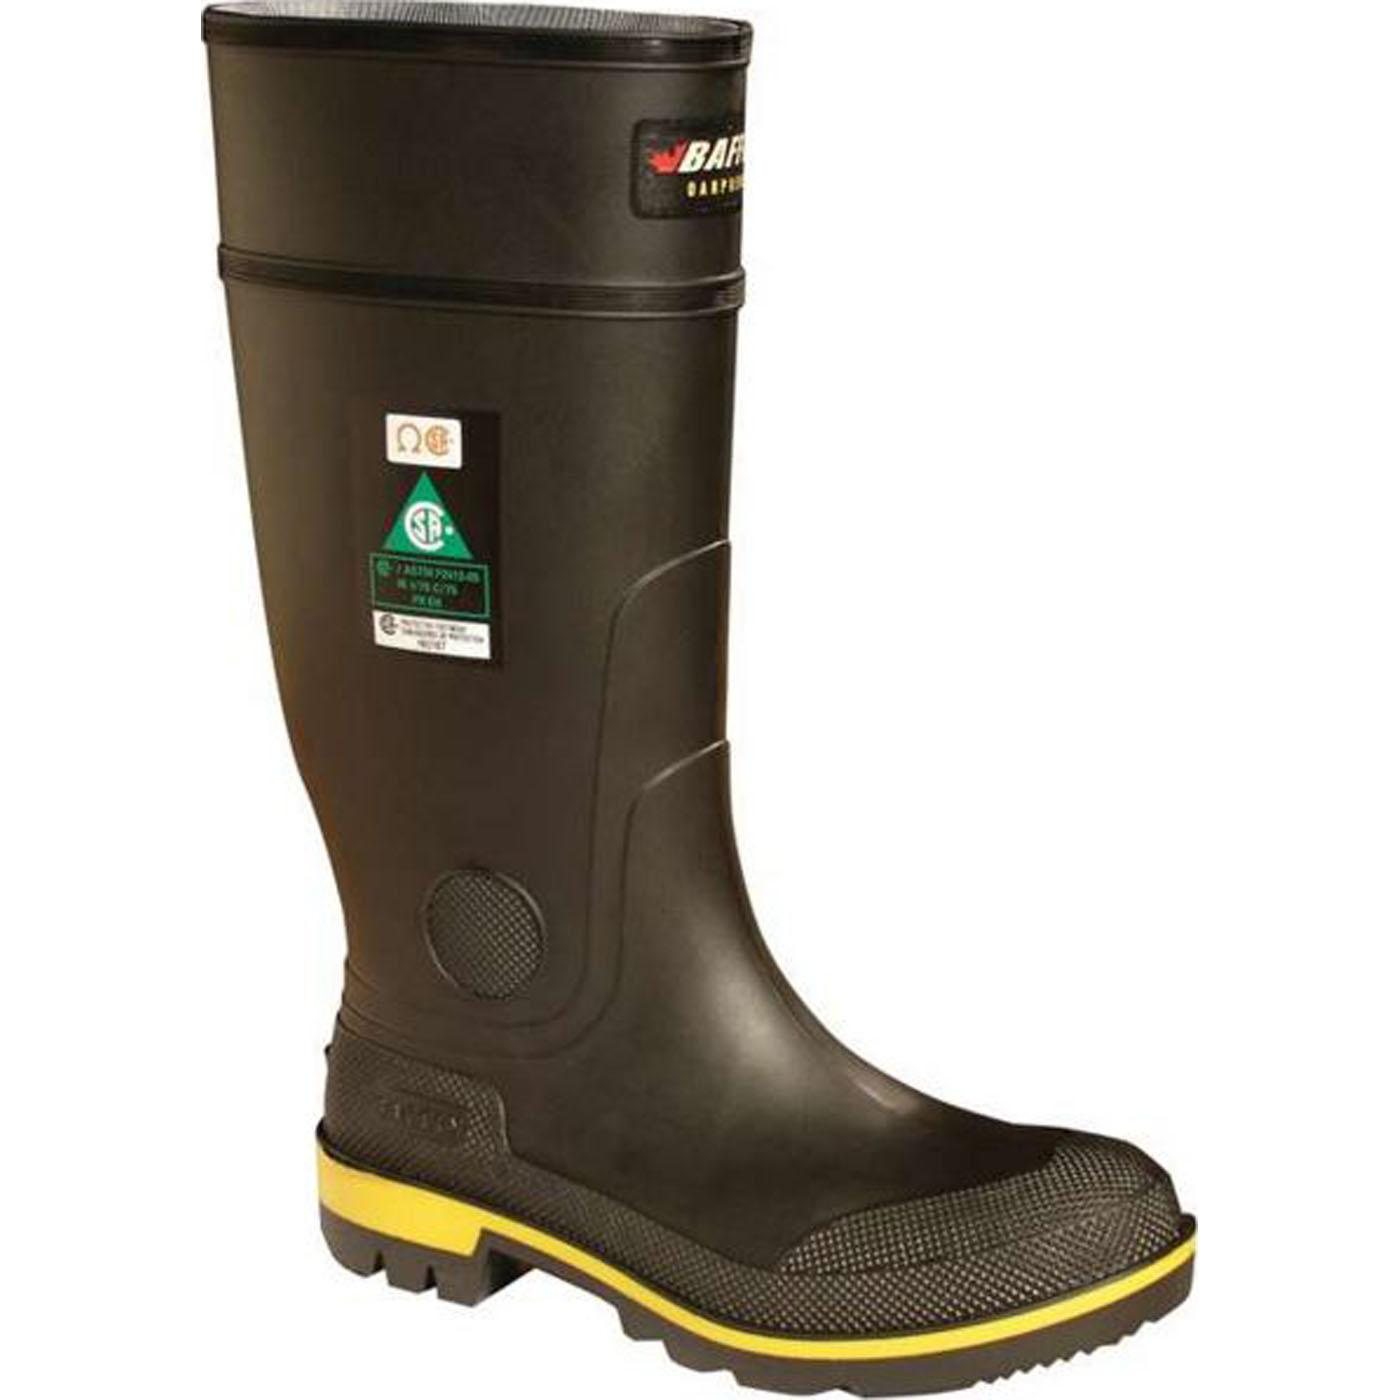 Pictures For Sale Buy Cheap Websites Baffin Ice Bear Safety Toe and Plate Boot(Men's) -Forest/Orange/Black For Sale Cheap Authentic Very Cheap PaK6f99